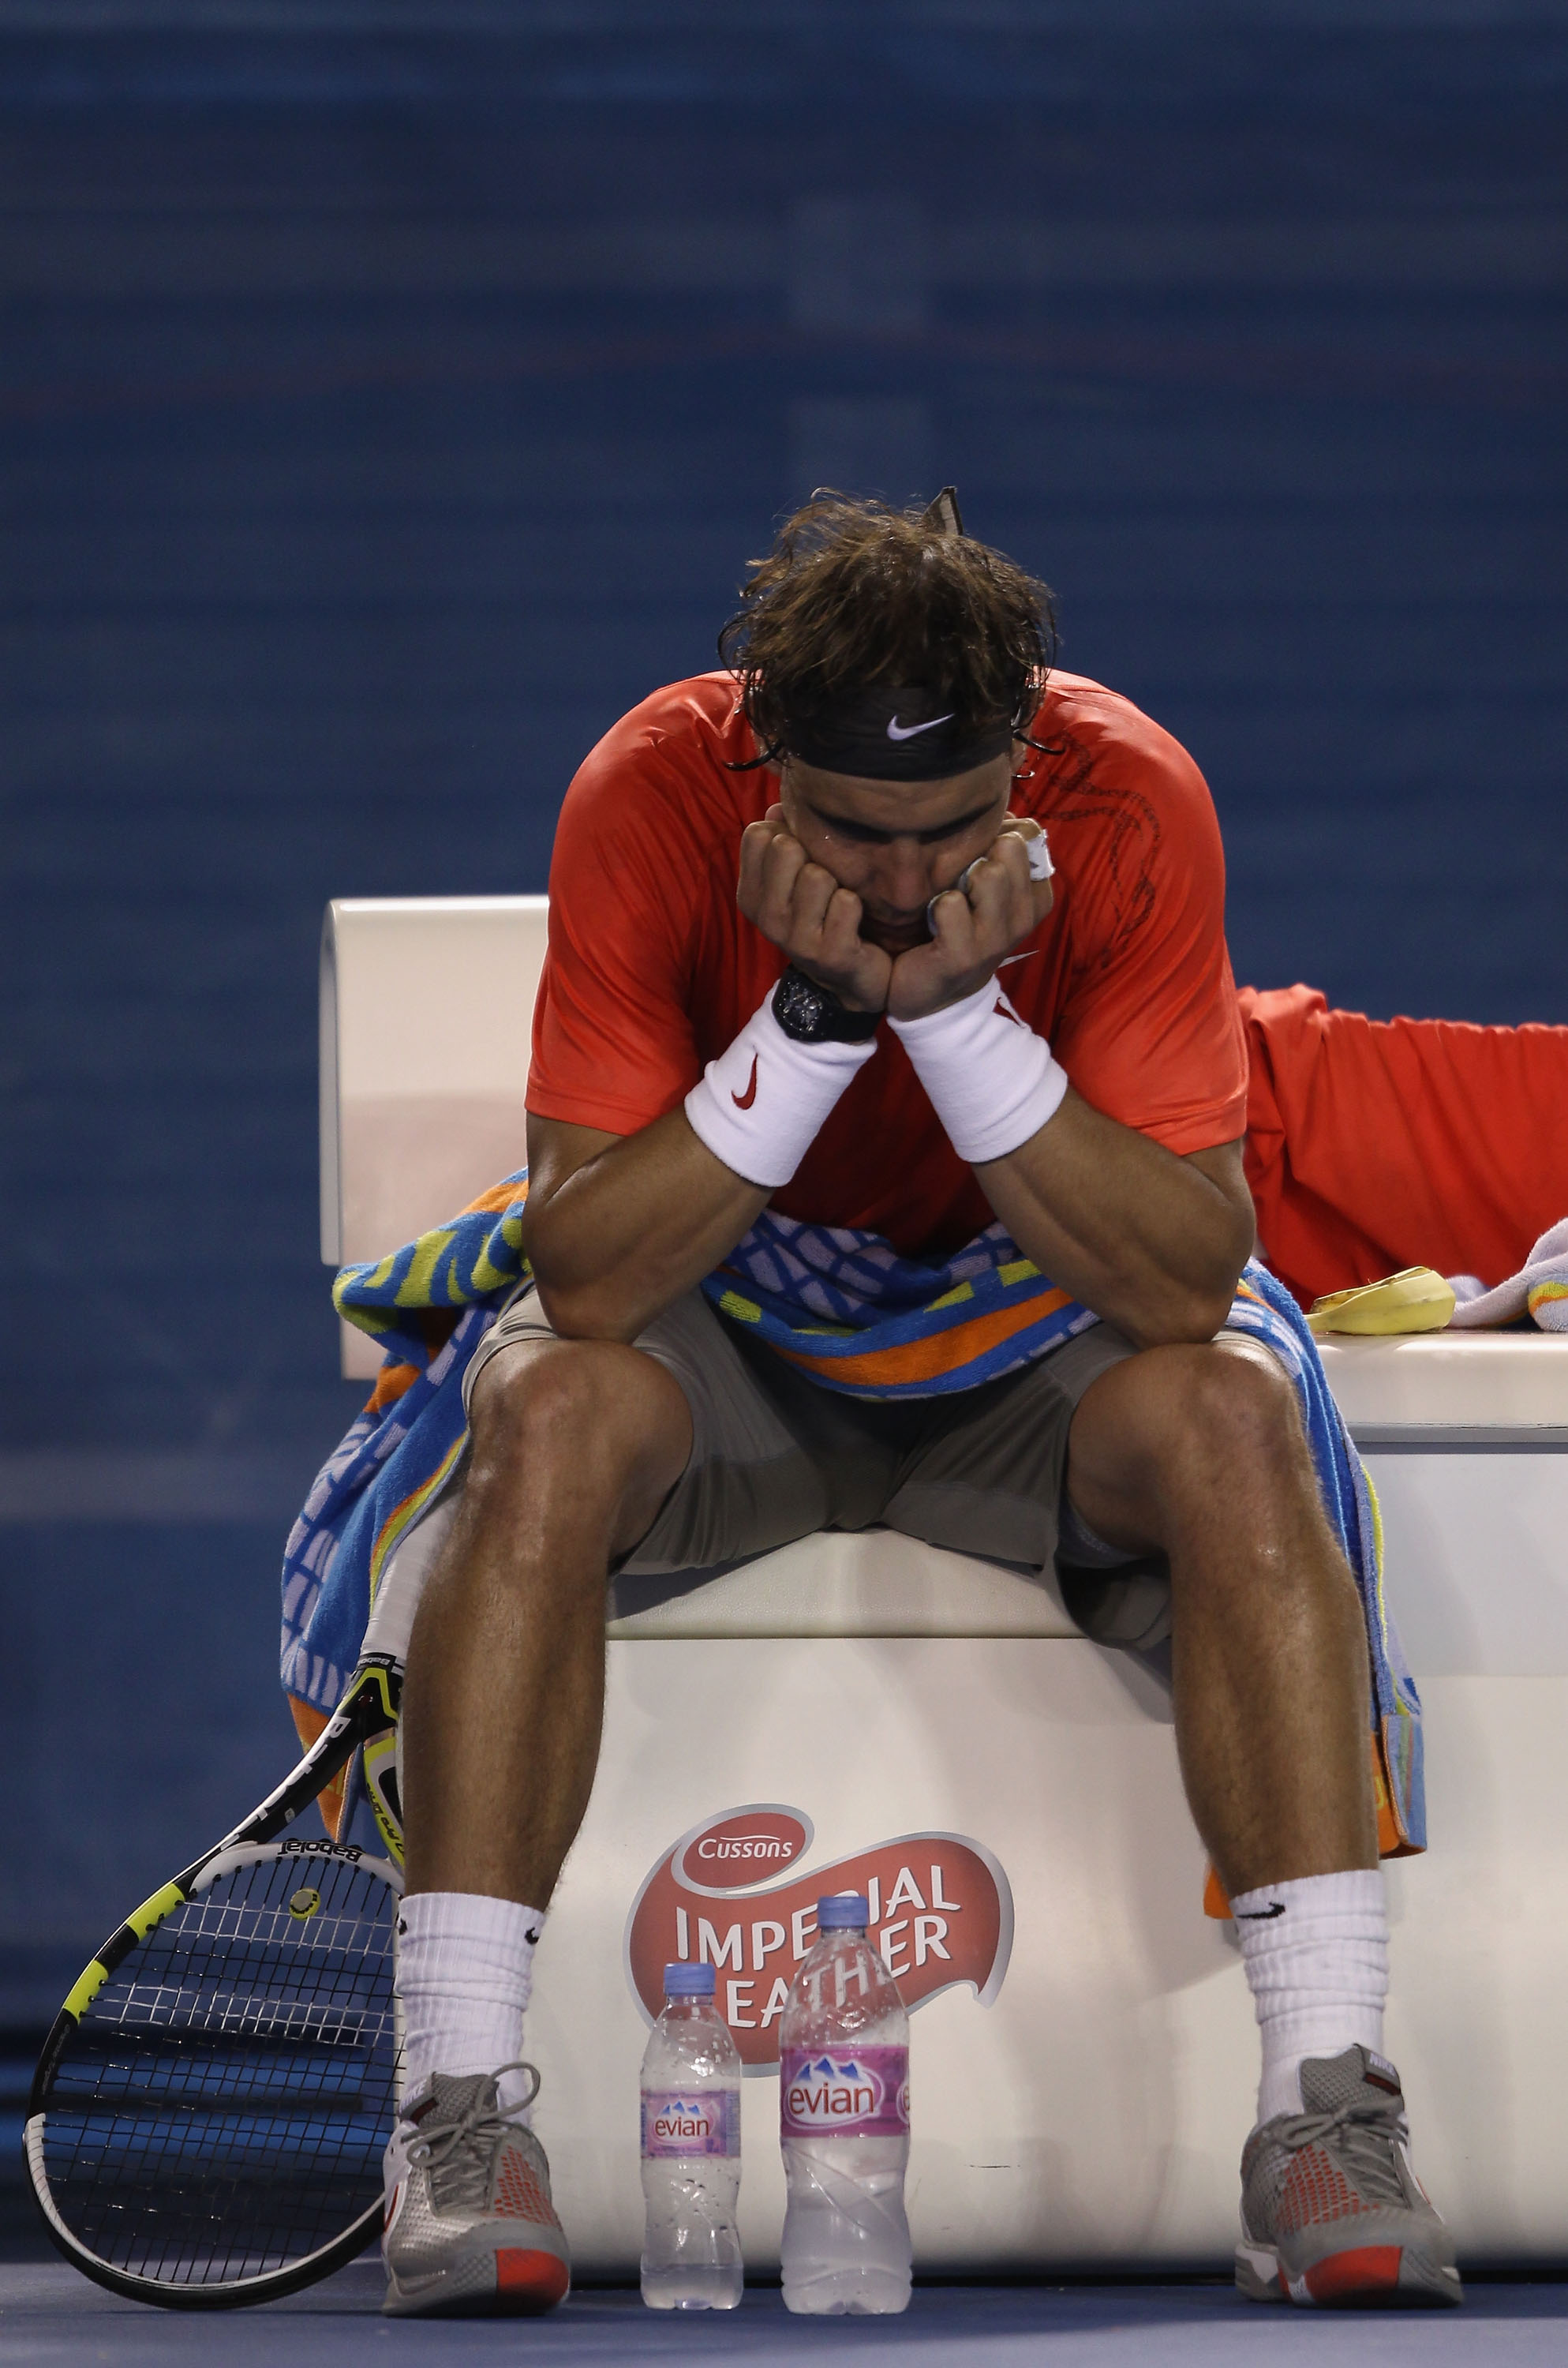 Rafael Nadal Loses Grading The Top 10 Men And Women At The 2011 Australian Open Bleacher Report Latest News Videos And Highlights